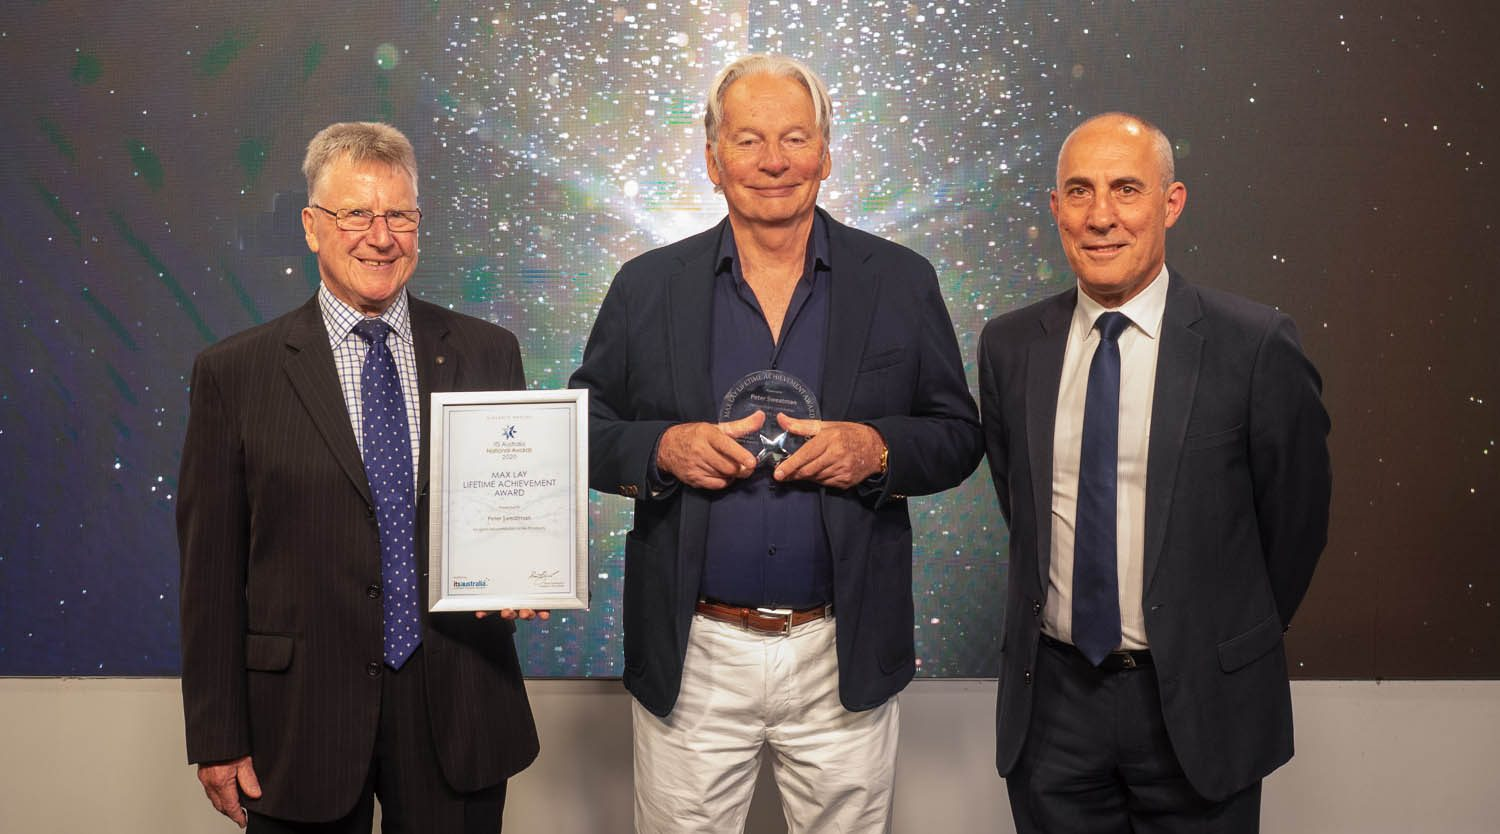 (L to R) Brain Negus, ITS Australia Ambassador and Chairman, CICA Group; Peter Sweatman, Max Lay Award Winner; and Dean Zabrieszach, ITS Australia President